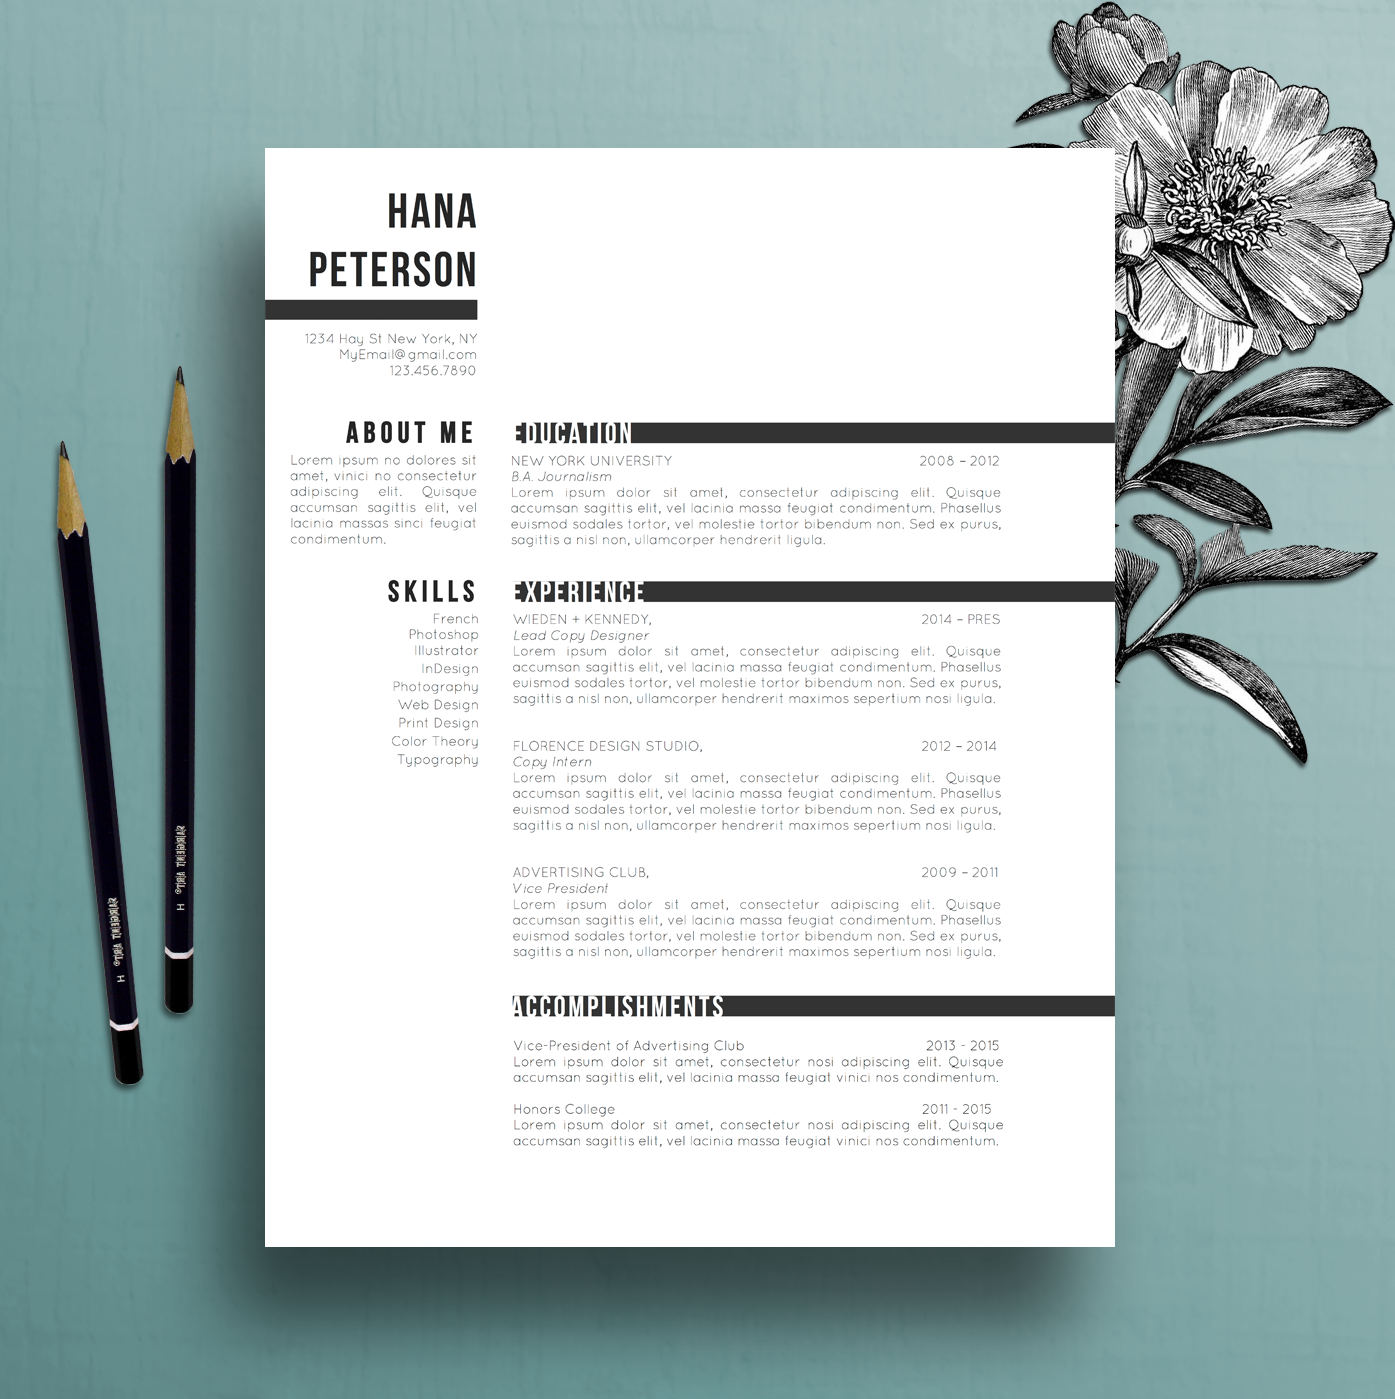 professional resume template cover letter template references professional resume template cover letter template references template ms word creative resume